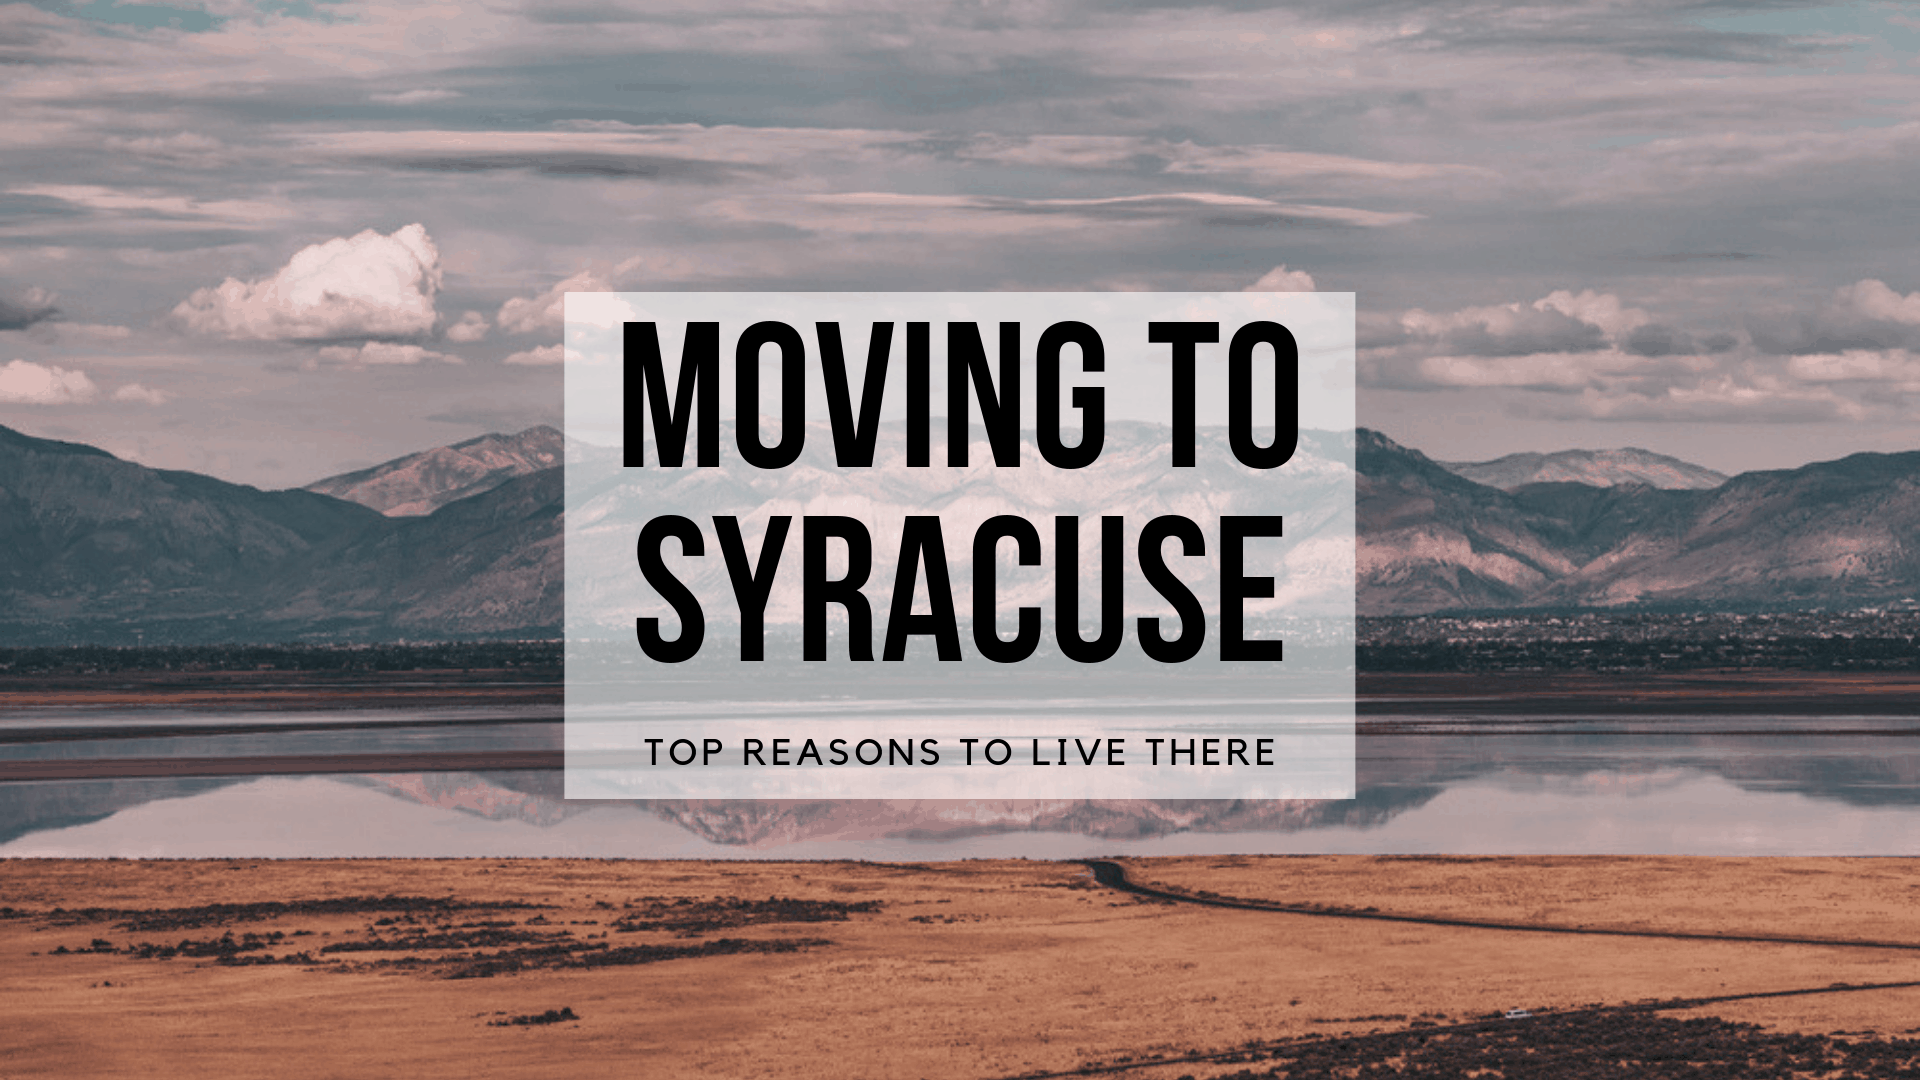 Moving To Syracuse - Top Reasons to Live There